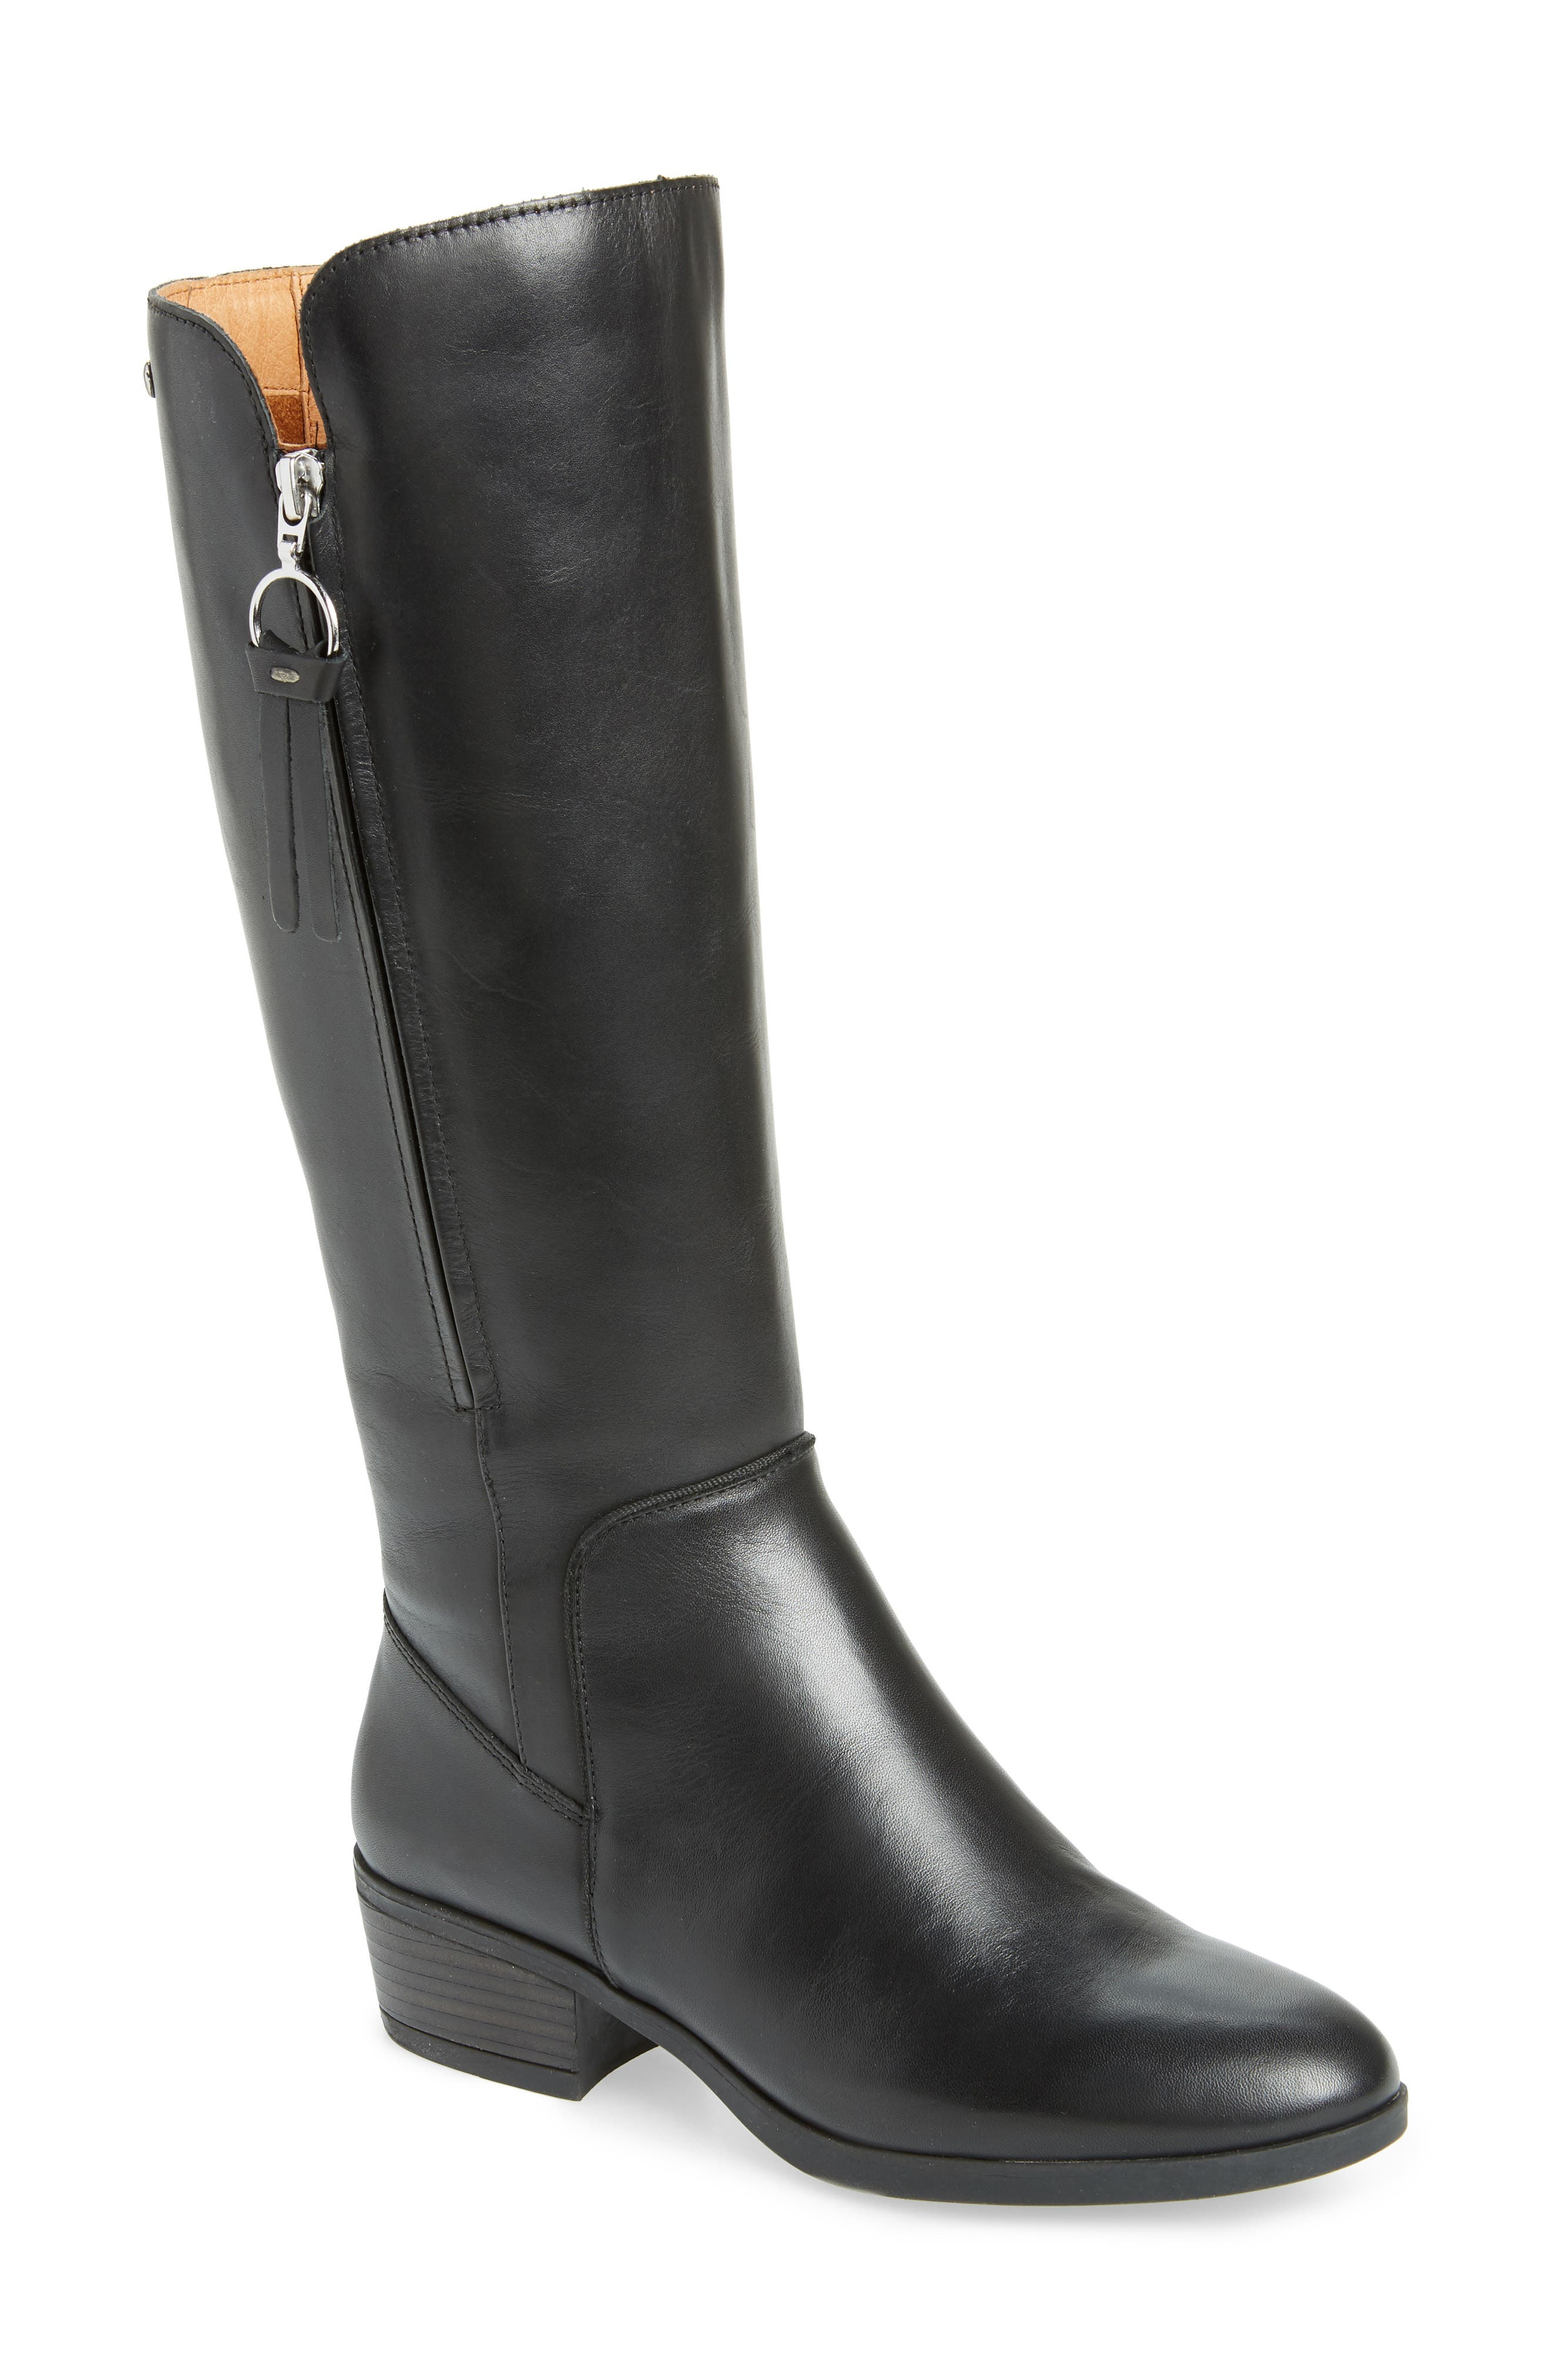 PIKOLINOS, Daroca Knee High Boot, Main thumbnail 1, color, BLACK LEATHER